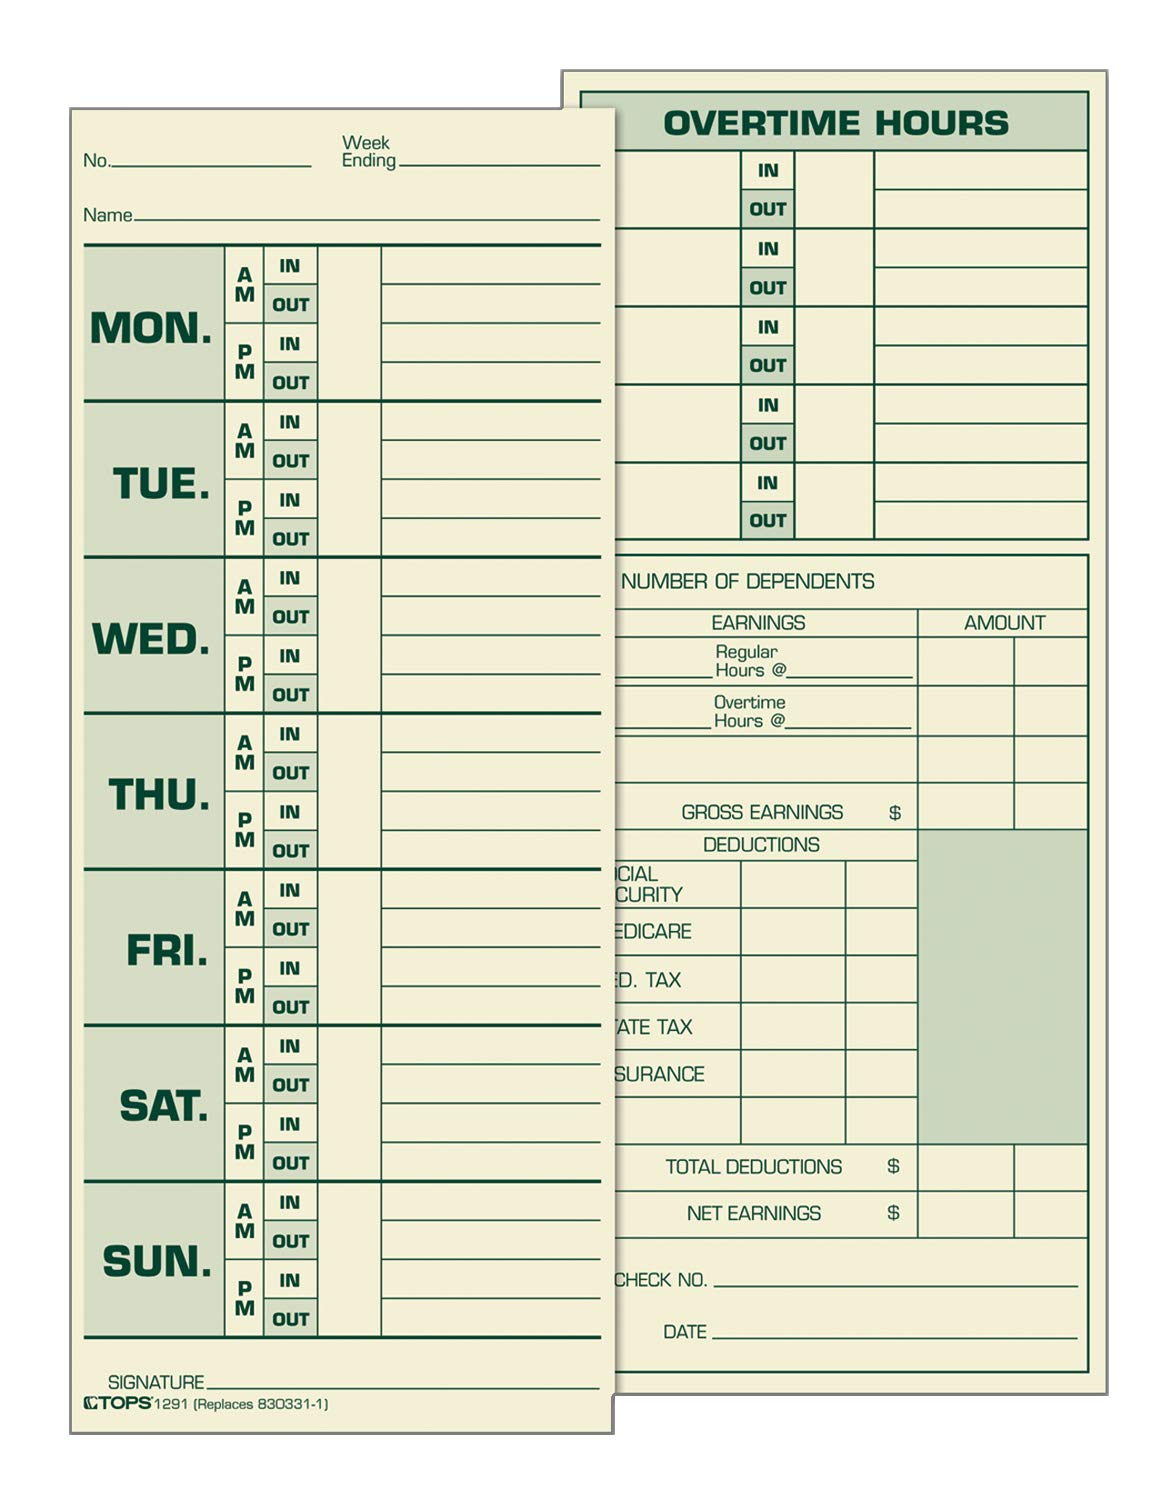 Tops 2-Sided 8 1/2 x 3 1/2 Inch Time Cards with Named Days 500 Pack (1291) TOPS Products